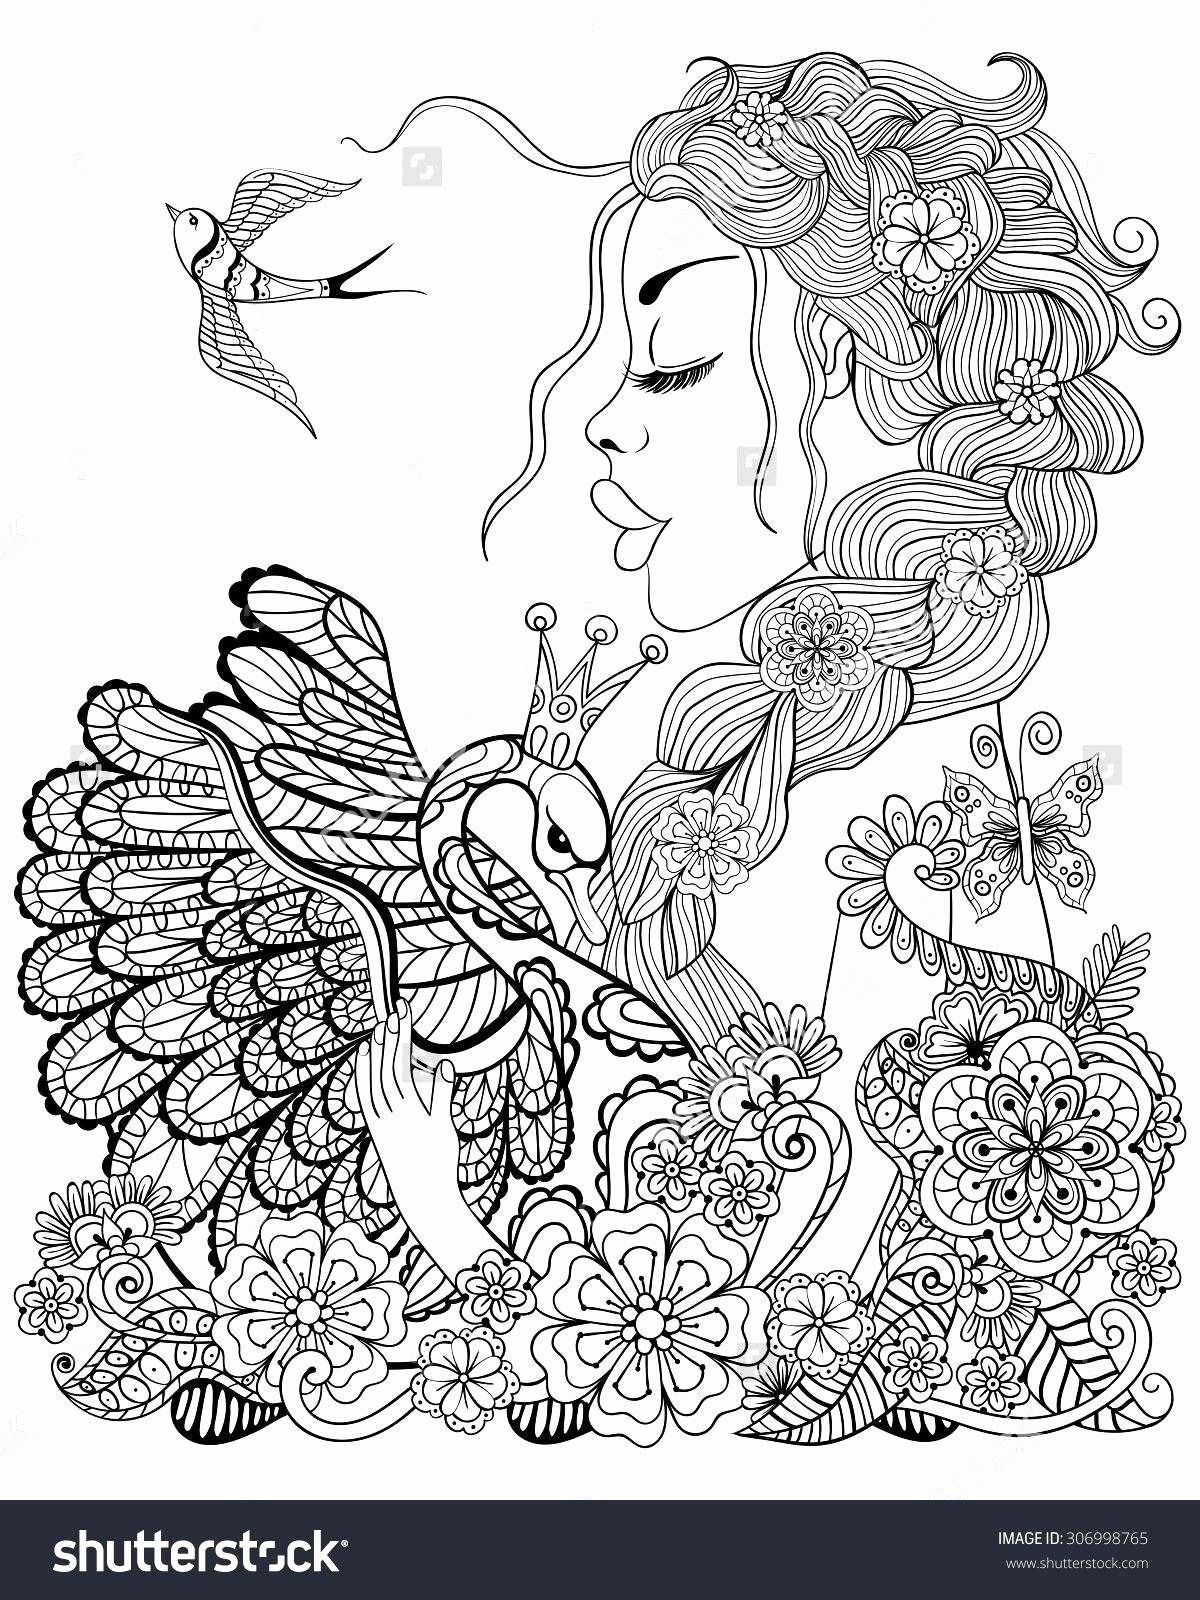 Hard Kids Coloring Pages Beautiful 45 Elegant Hard Coloring Books Fairy Coloring Pages Love Coloring Pages Animal Coloring Pages